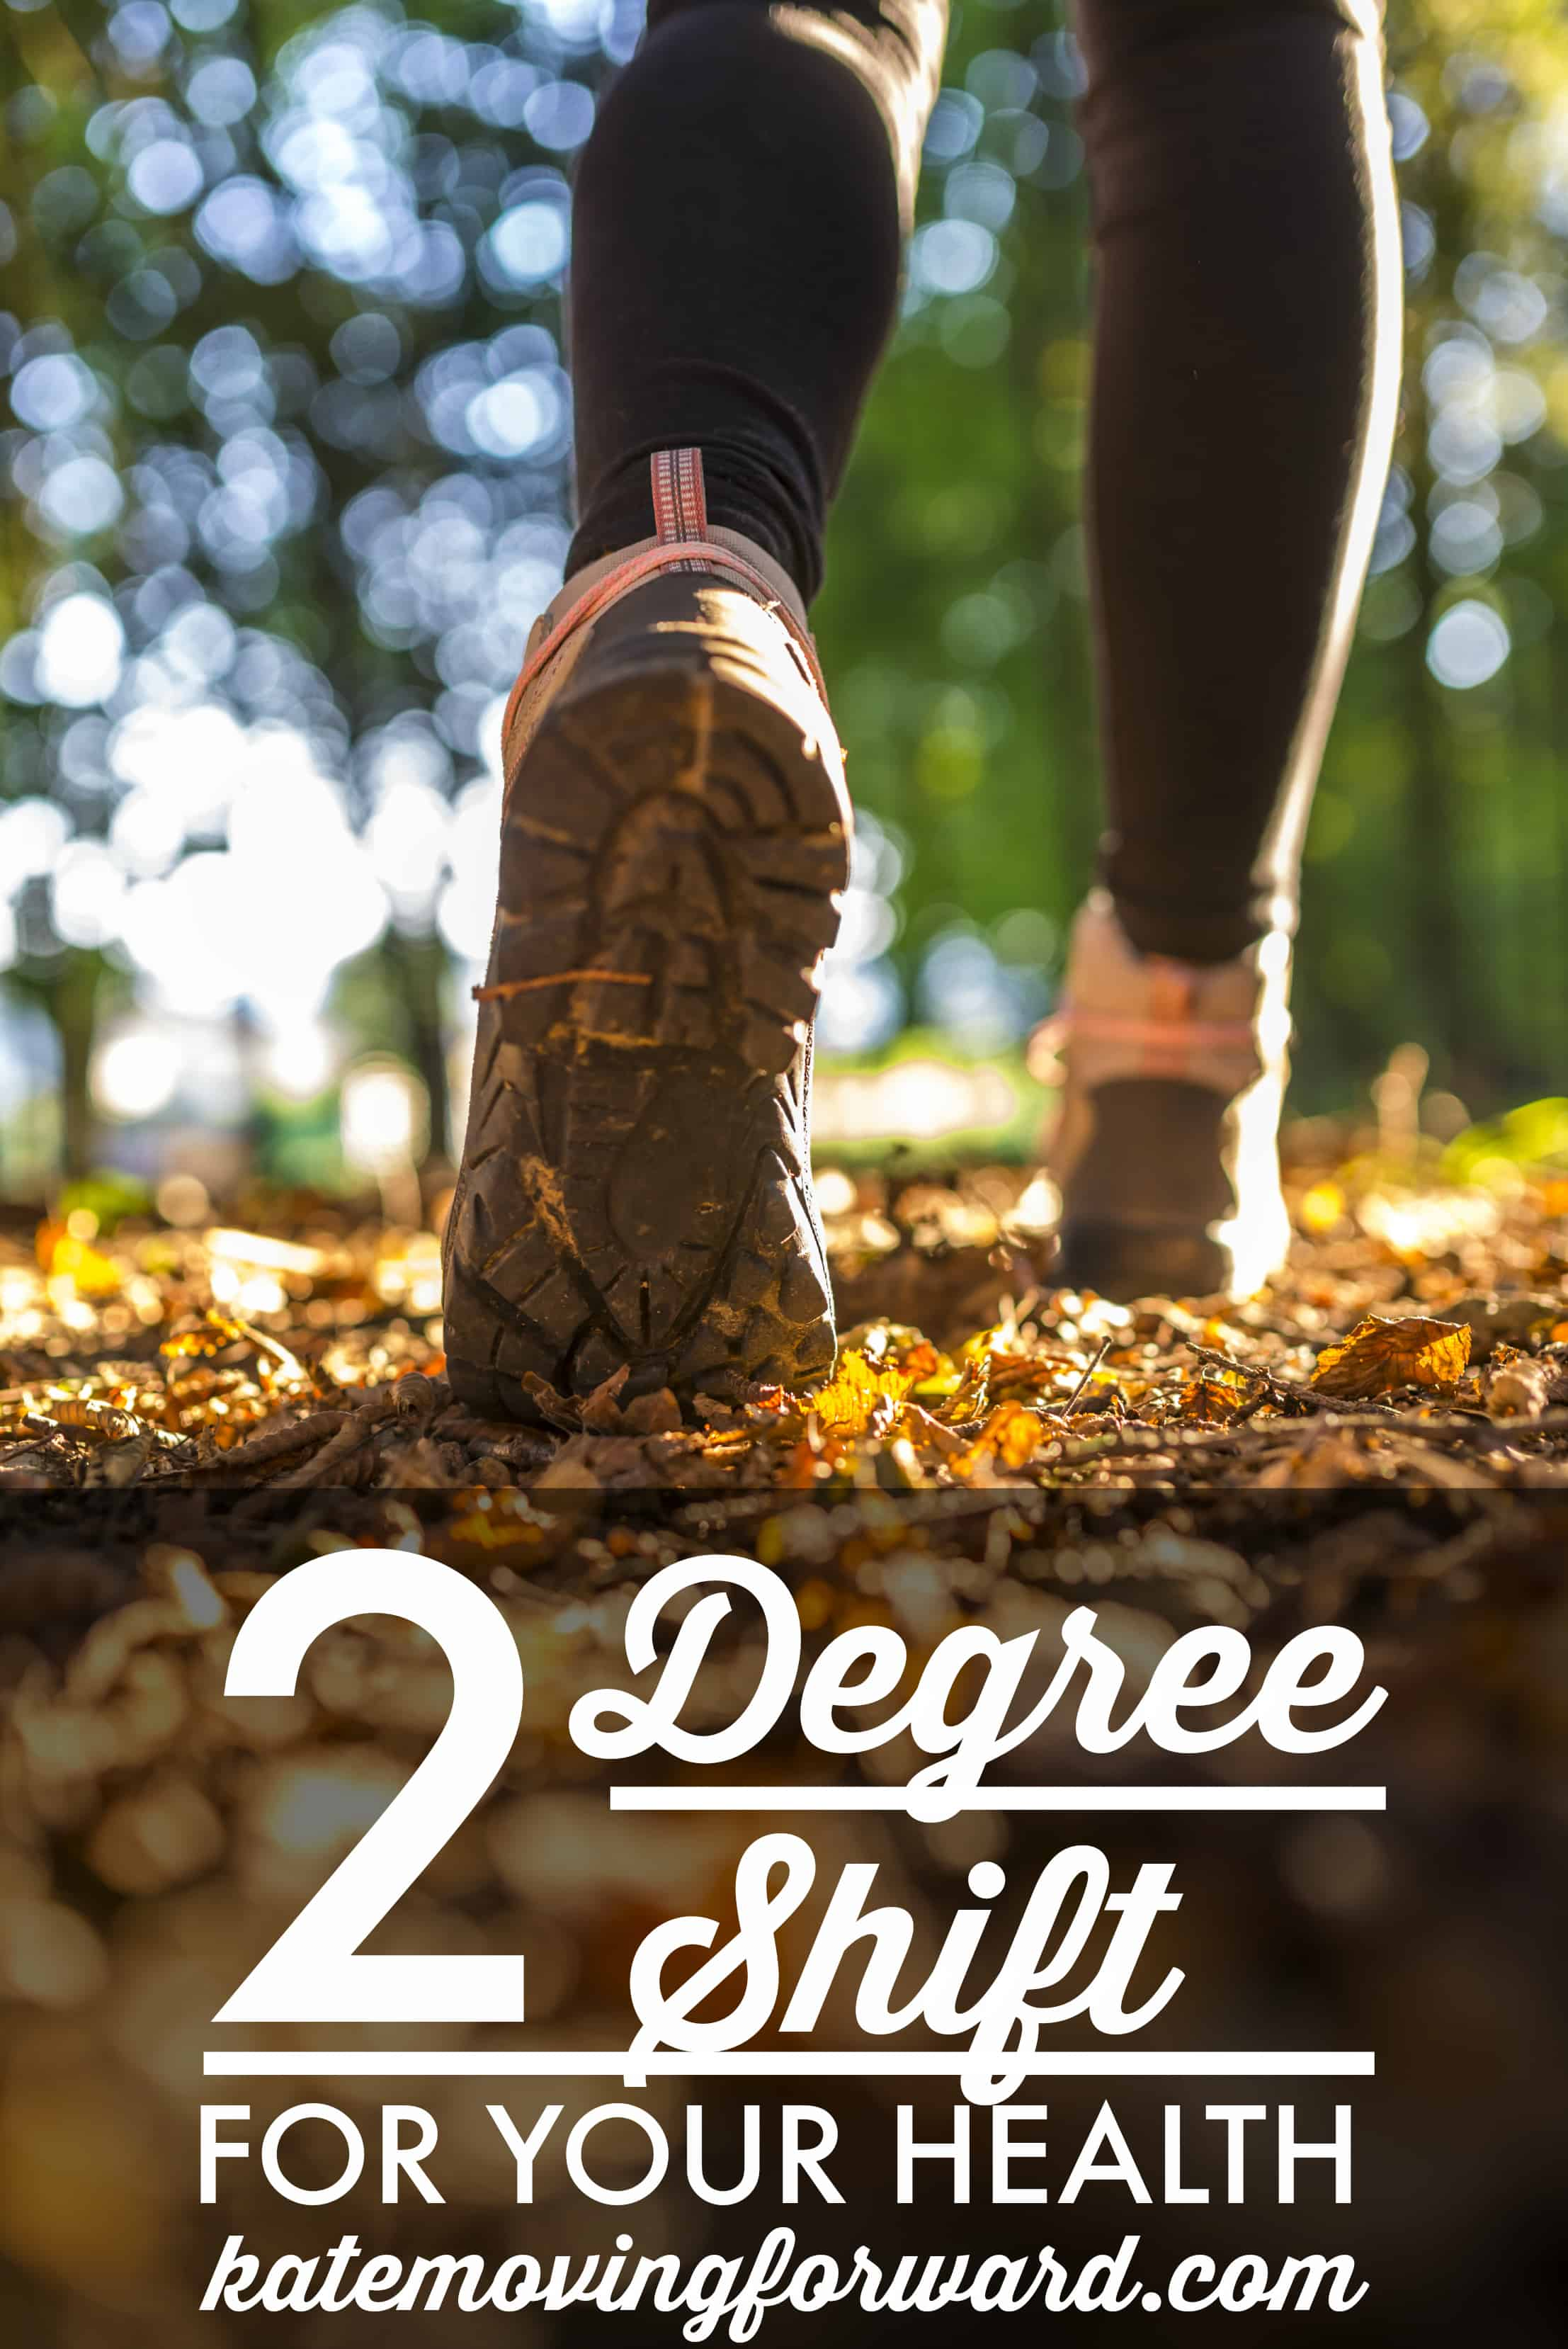 2 degree shift for your health